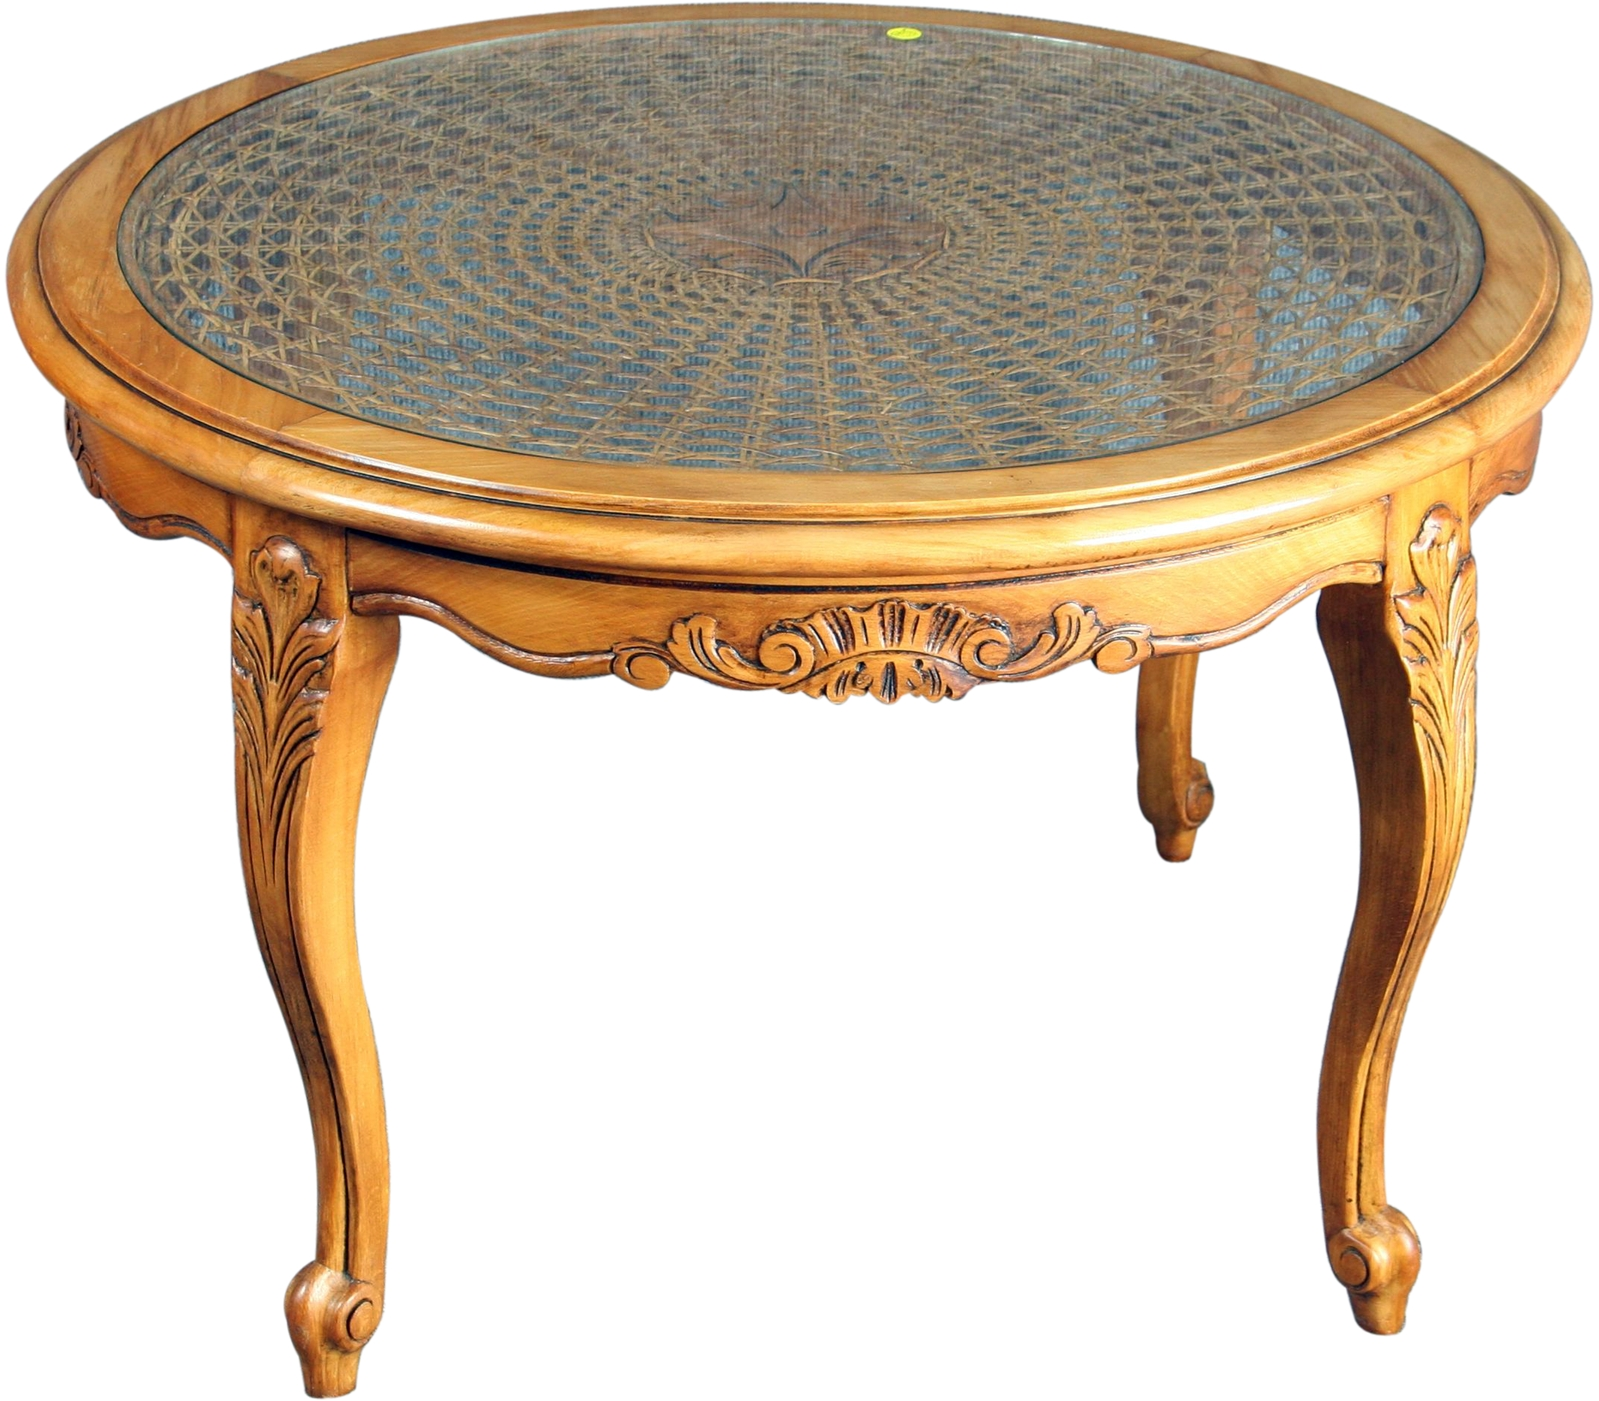 VINTAGE 1950 ROUND FRENCH COUNTRY COFFEE TABLE, LOUIS XV